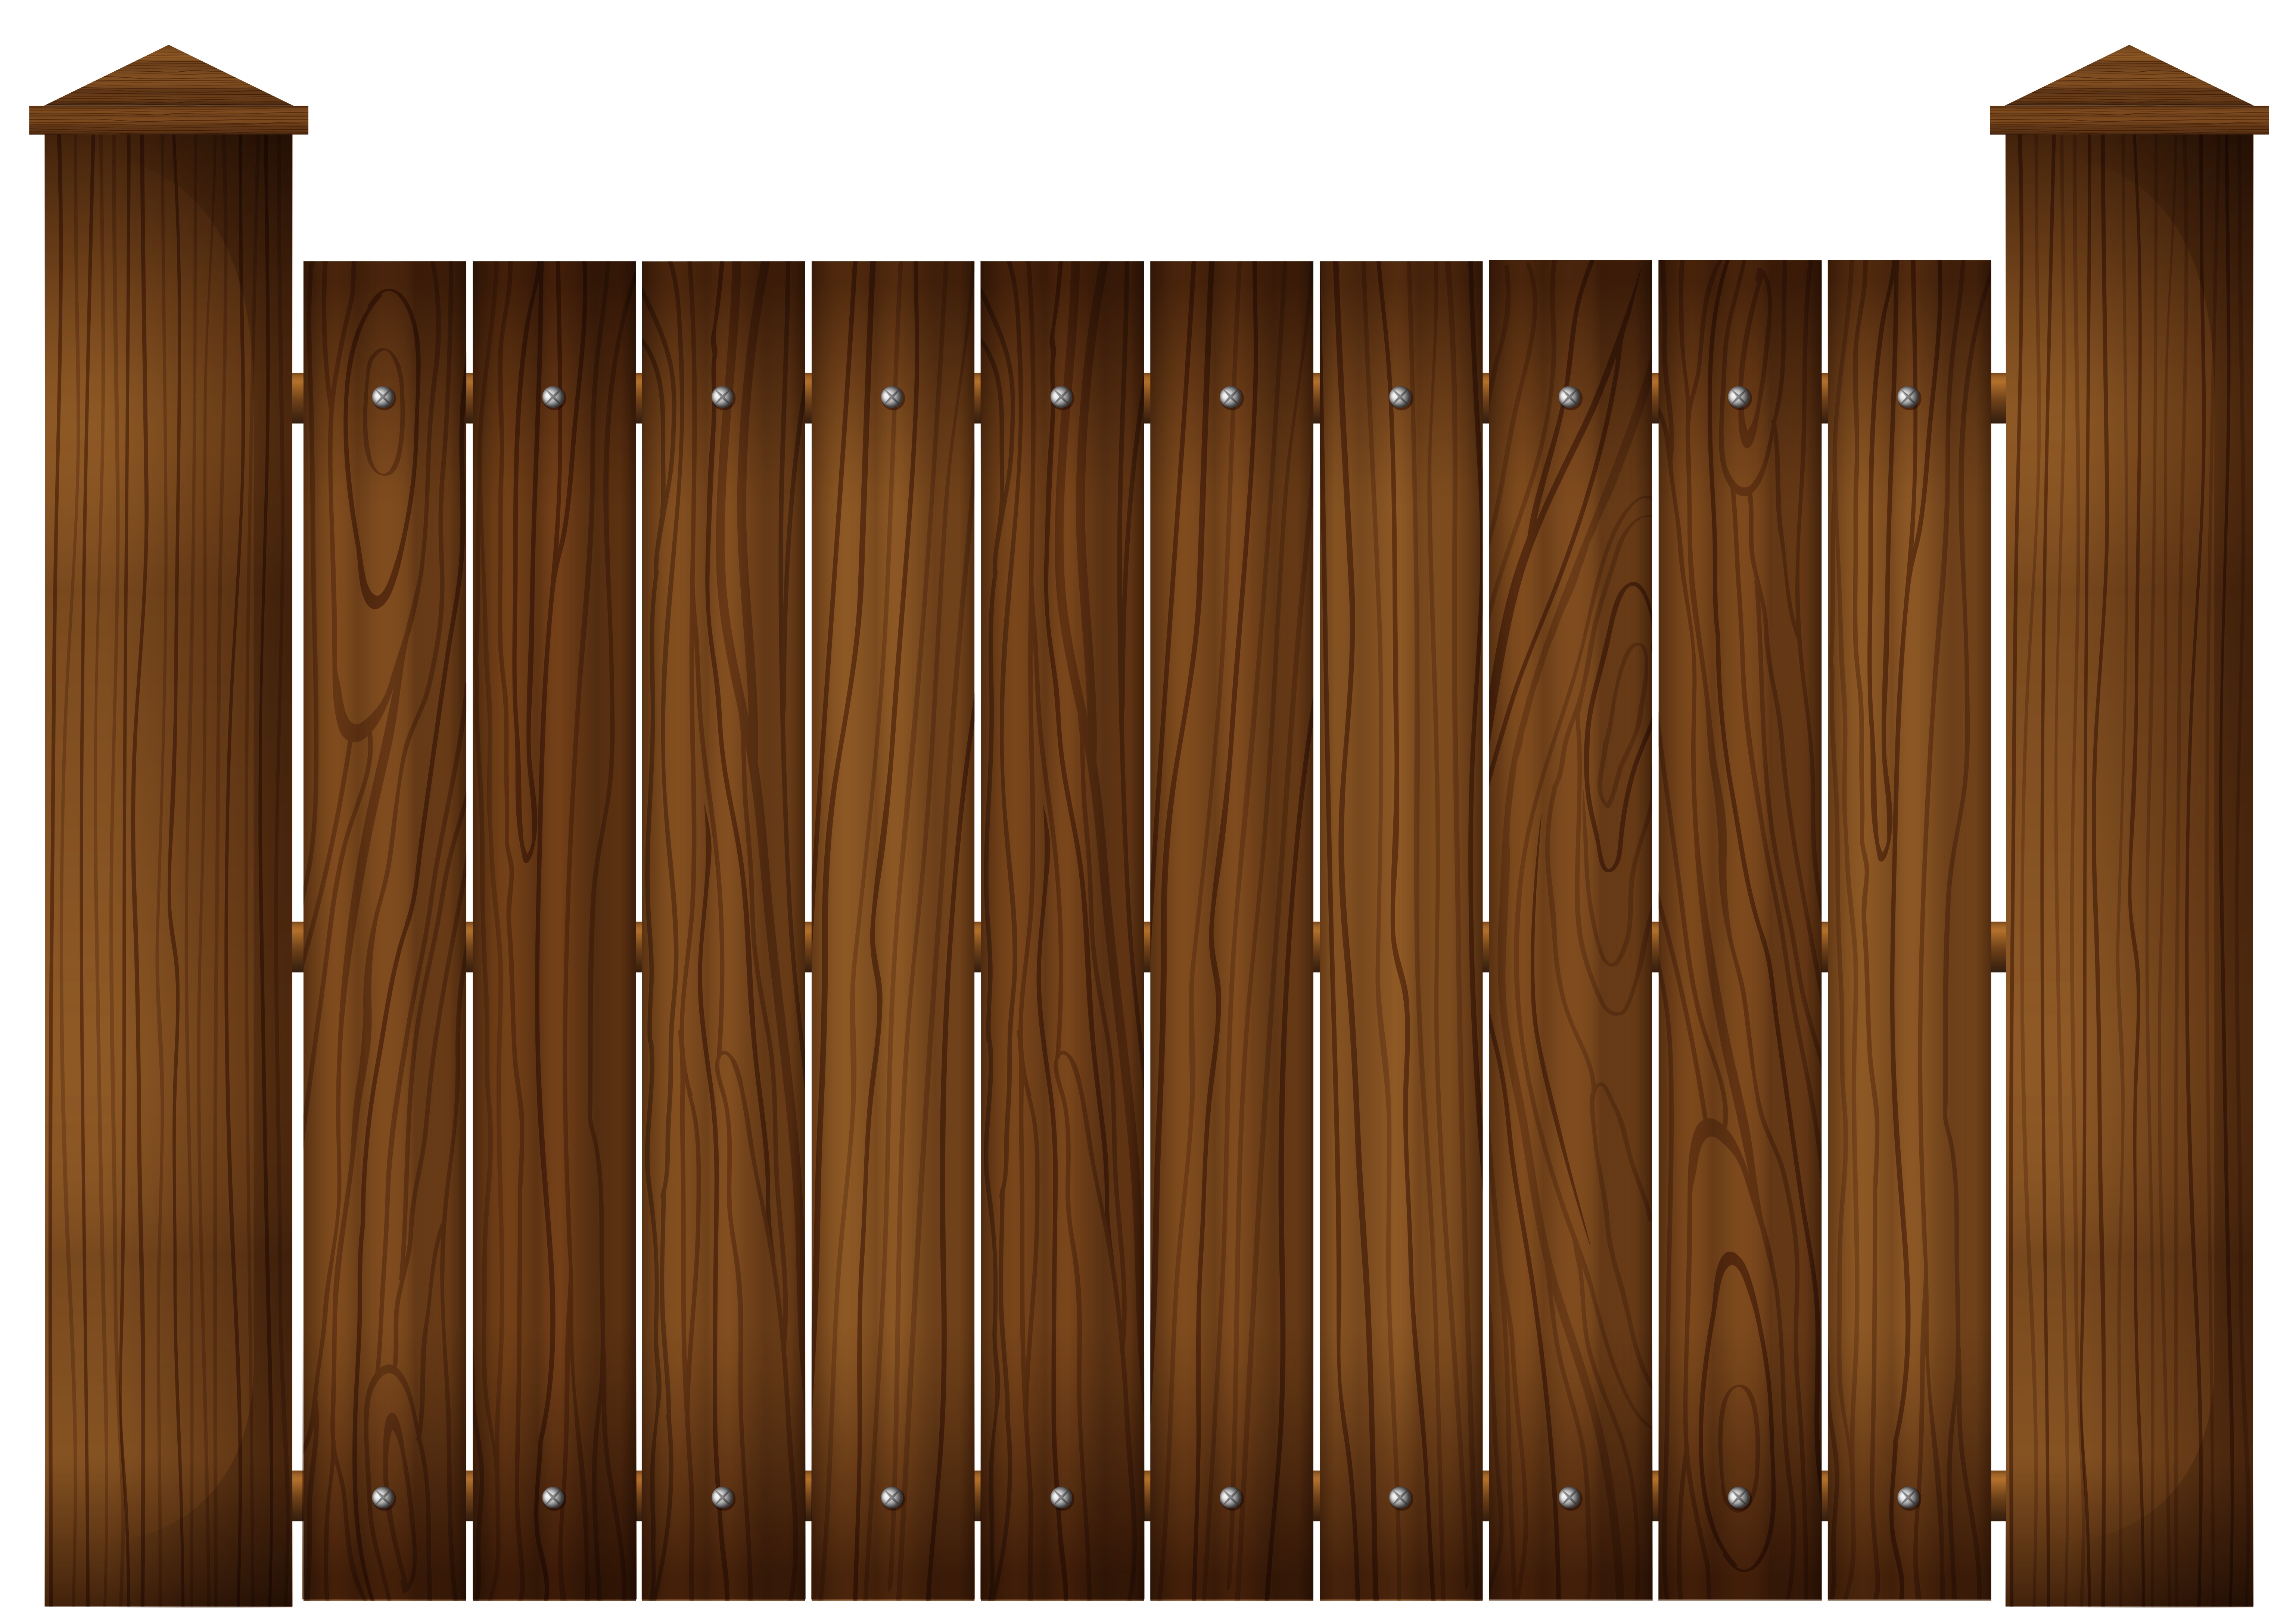 Wooden picture gallery yopriceville. Fence clipart wood fence